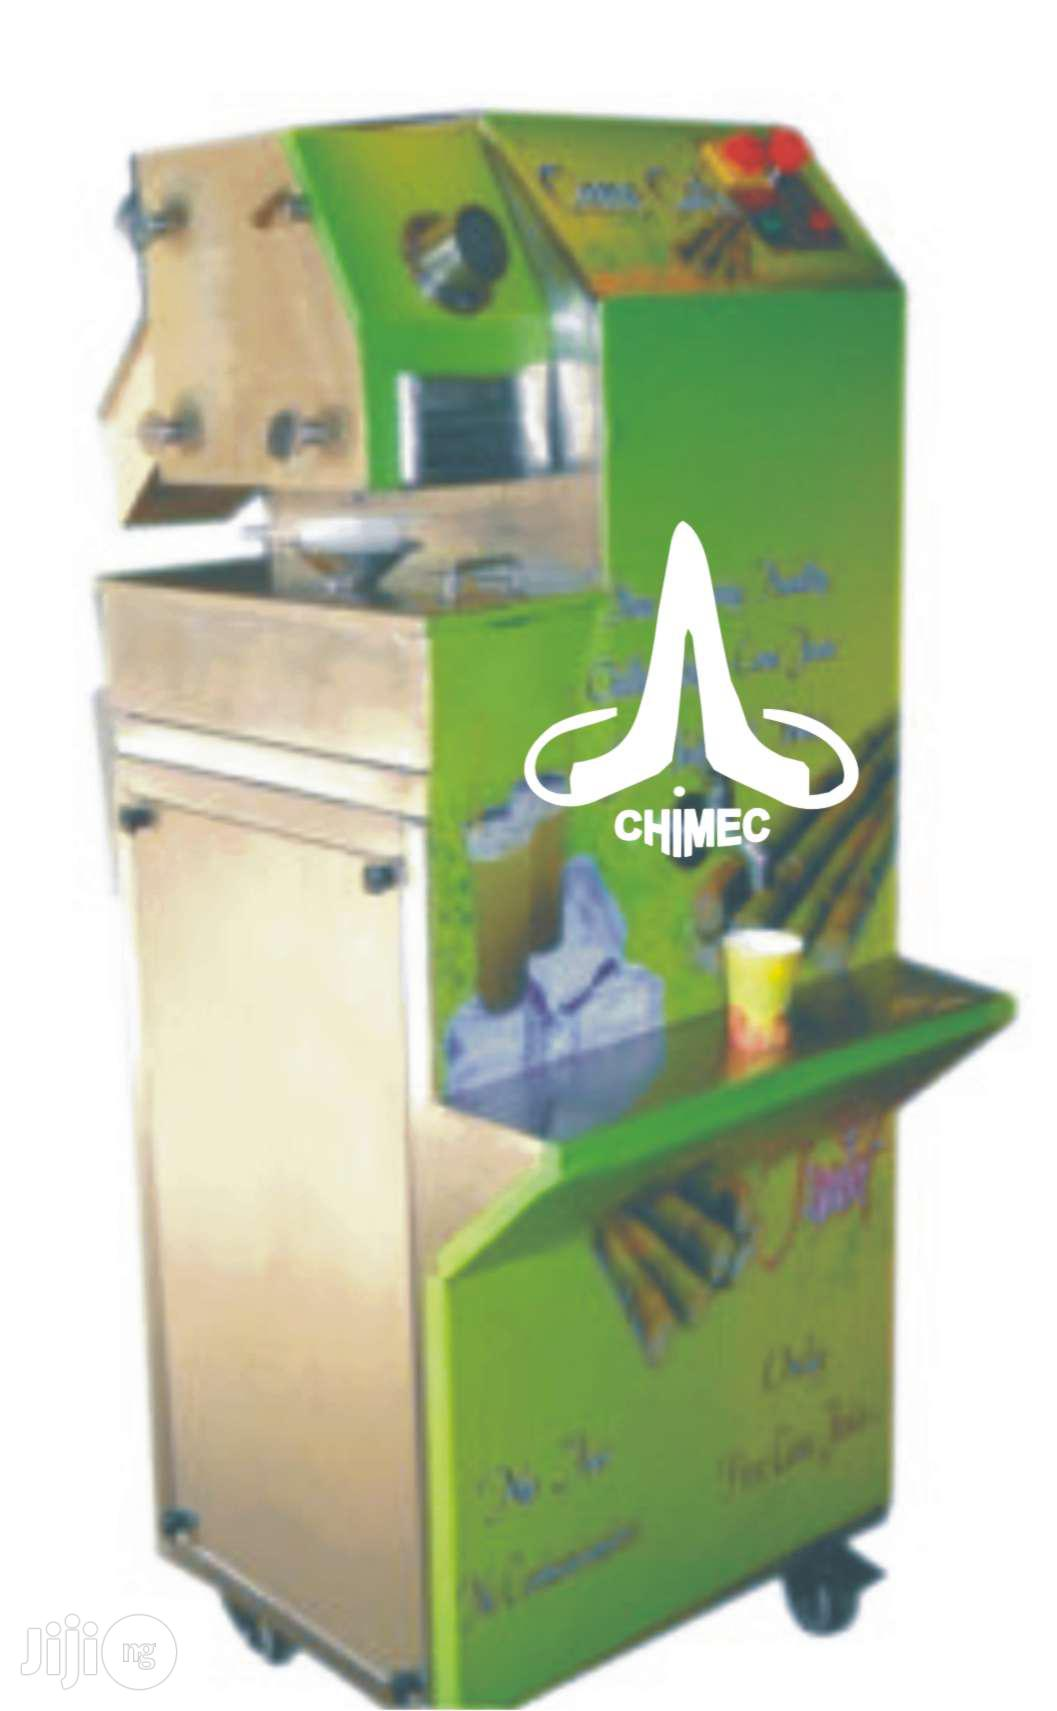 Sugarcane Juice Extracting Machine In Garki 1 Restaurant Catering Equipment Transchimec Abuja Jiji Ng For Sale In Garki 1 Buy Restaurant Catering Equipment From Transchimec Abuja On Jiji Ng